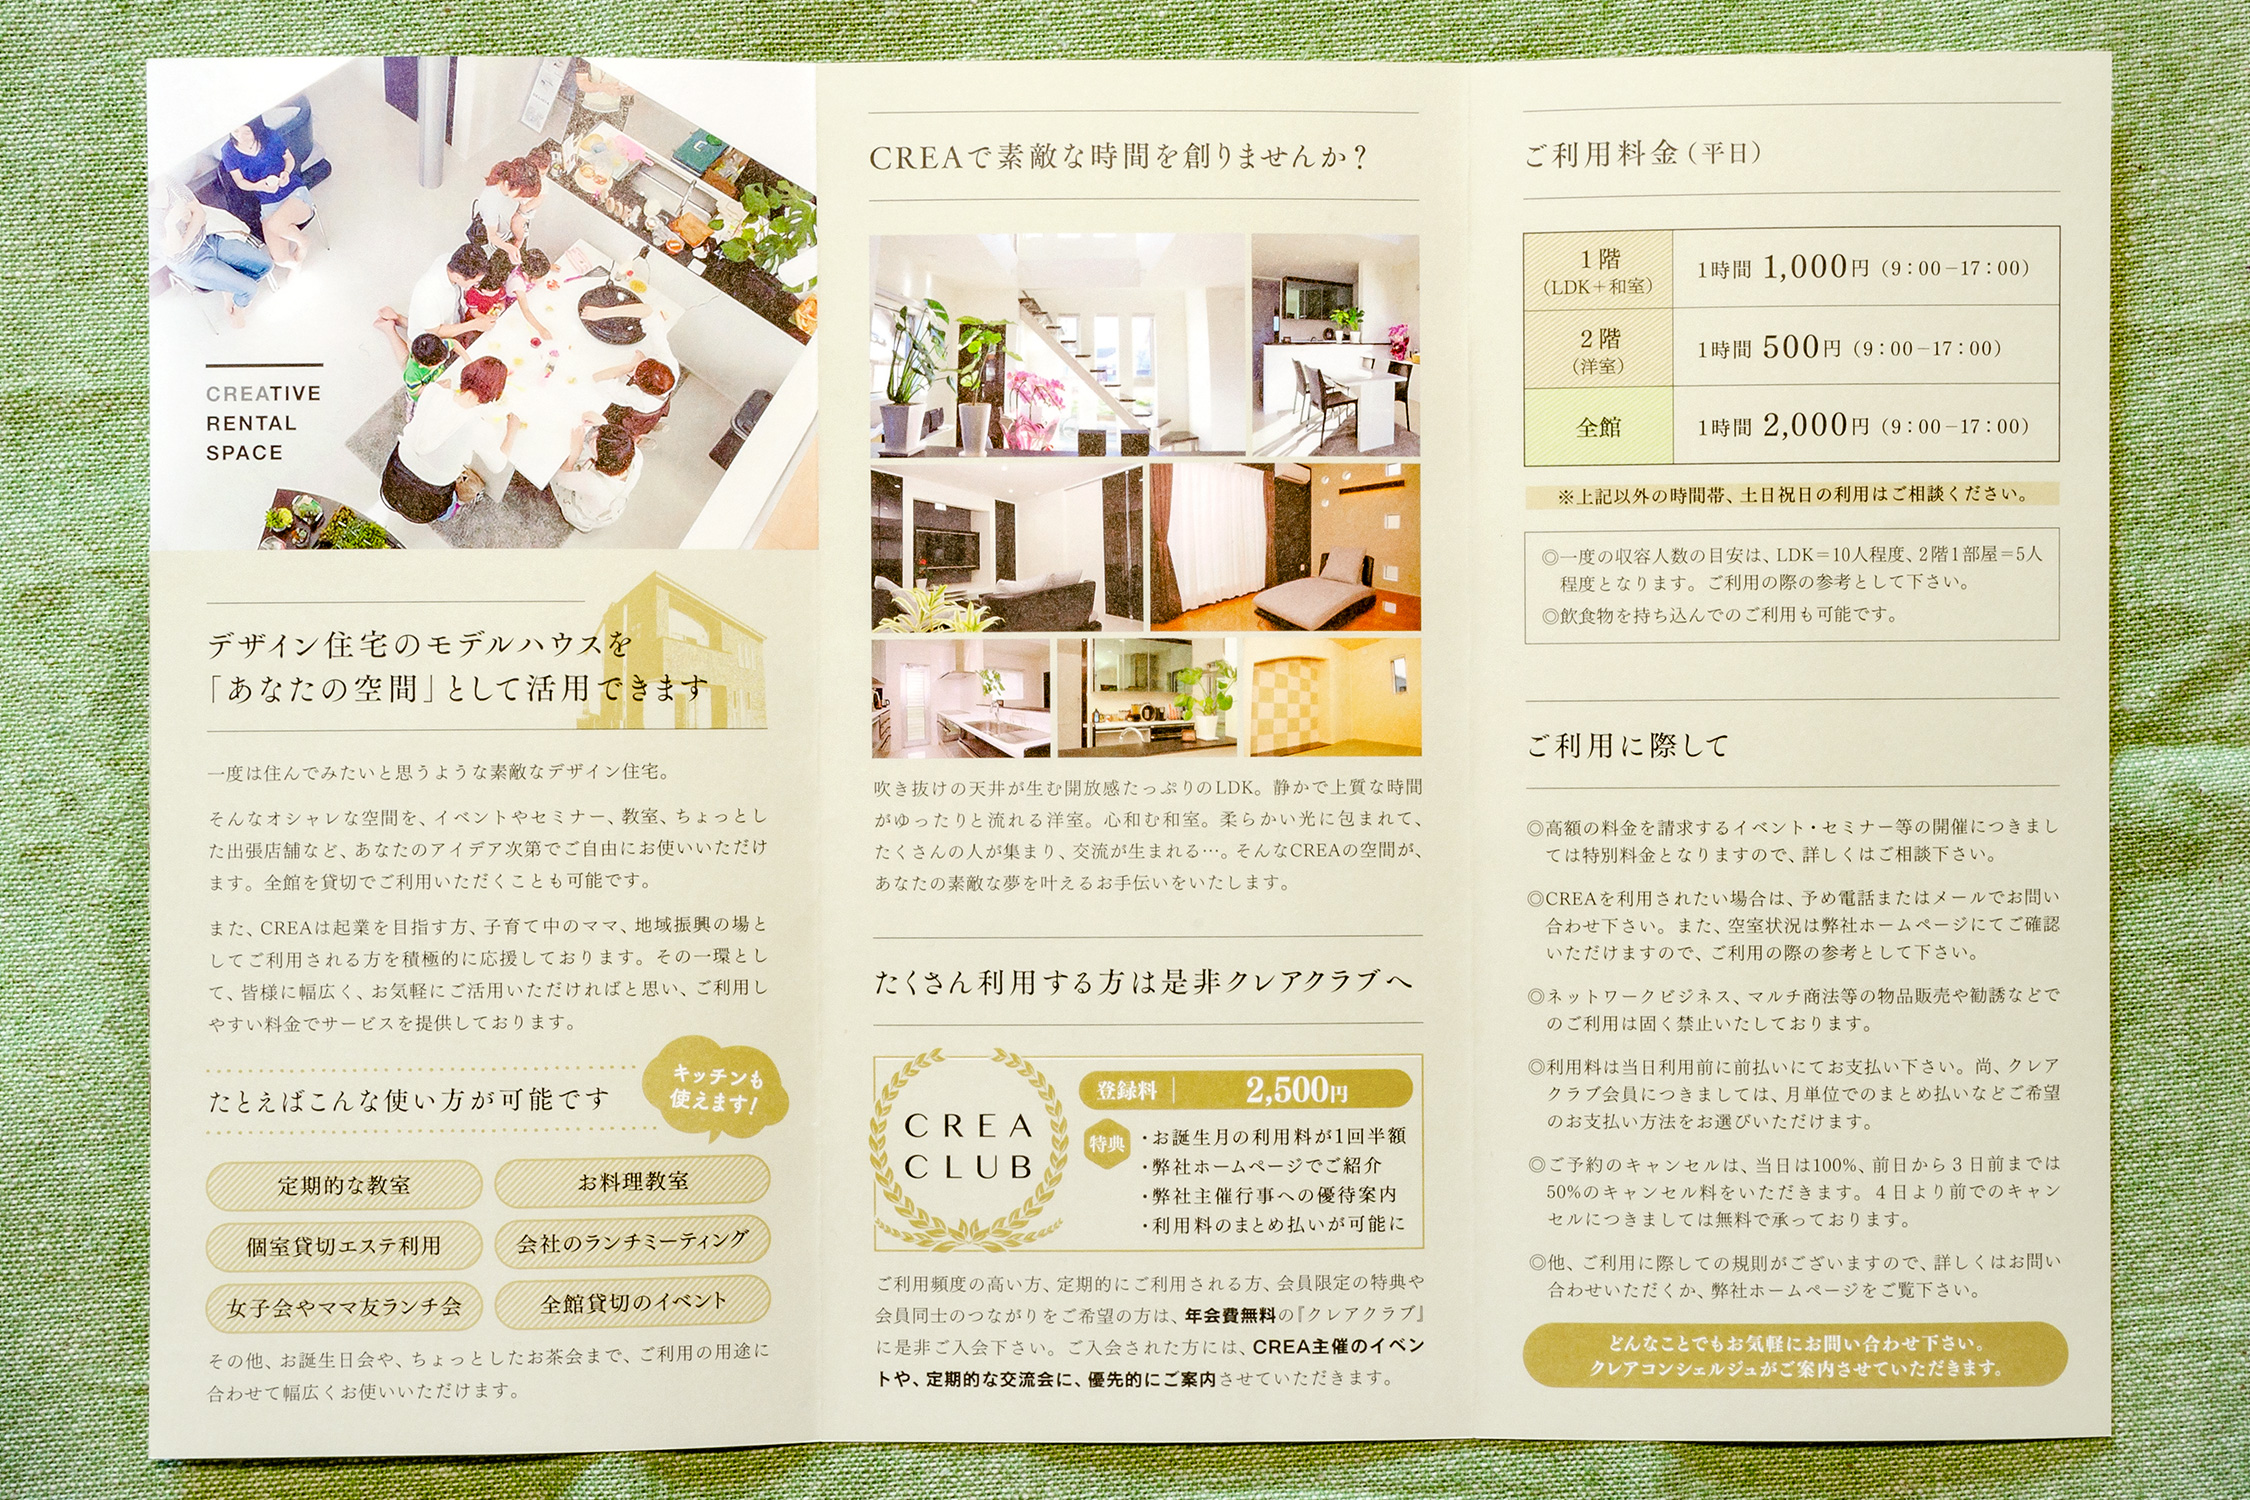 brochure_tmc-crea-rental-space_4